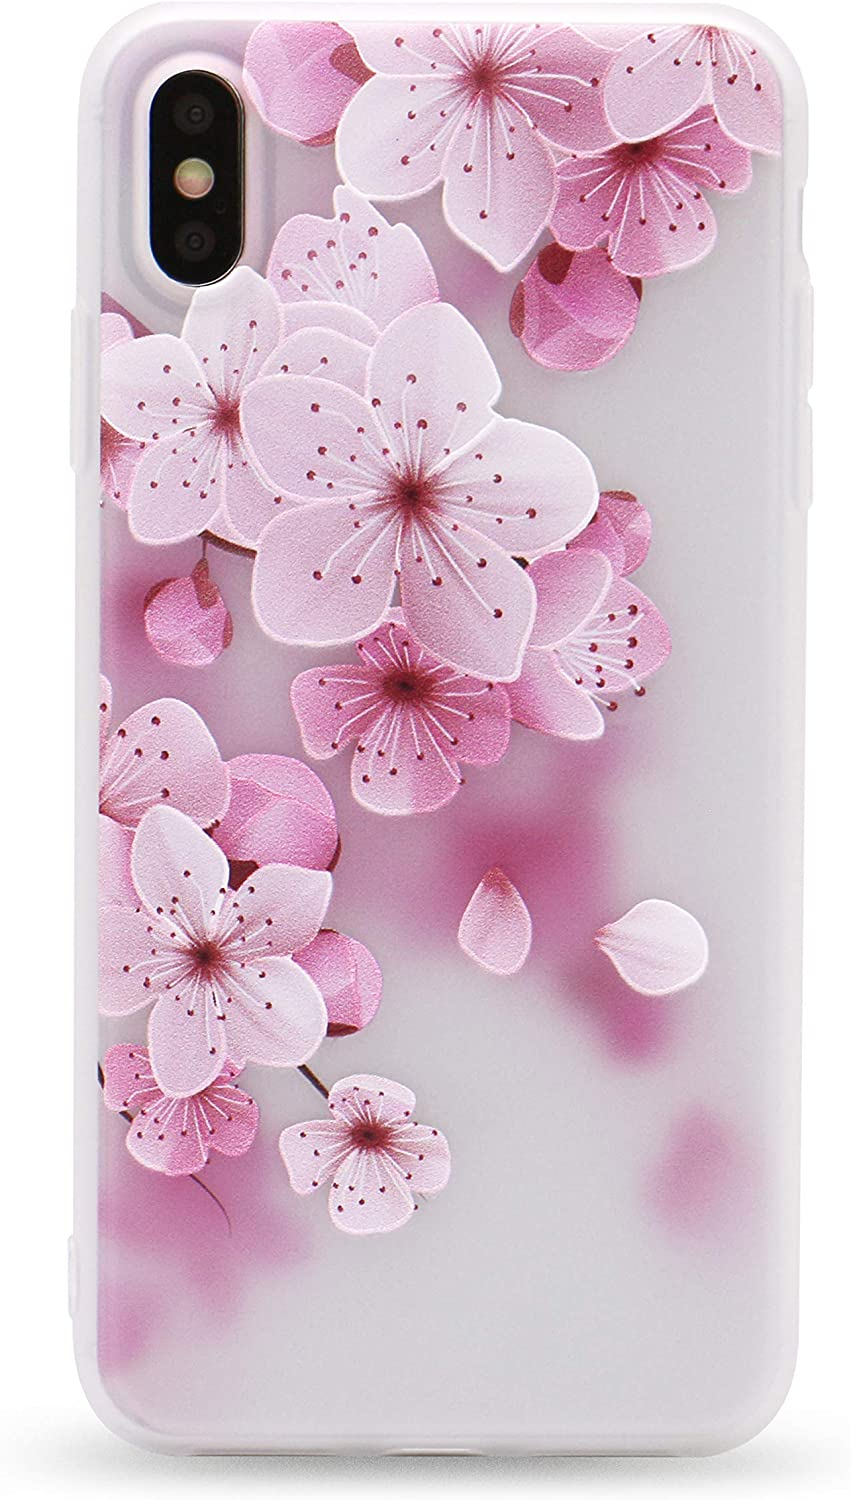 IMIFUN 3D Relief Flower Silicon Phone Case for iPhone X,6,6 Plus, 6S,6S Plus, 5,5S,SE,5C Rose Floral iPhone Cases Soft TPU Cover (for iPhone X)